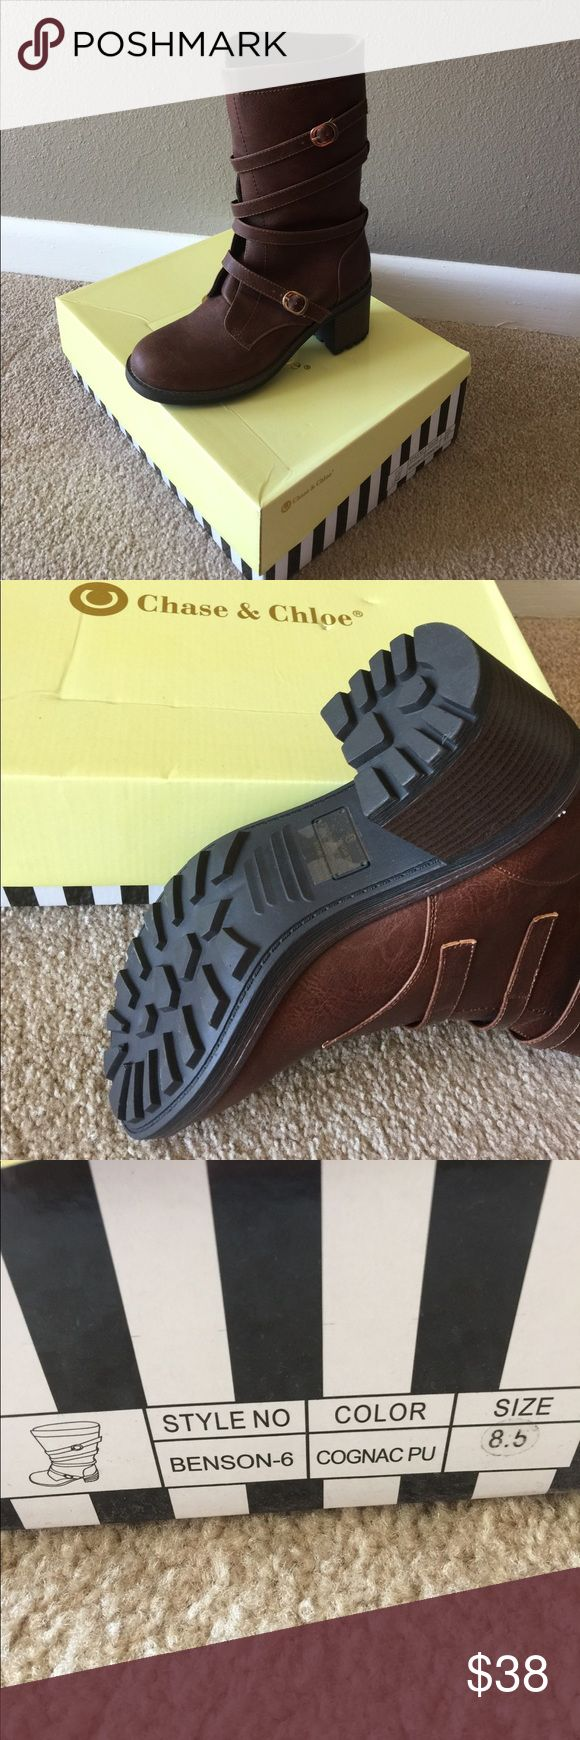 Boots Brand new, never worn Chase and Chloe brown boots chase and chloe Shoes Heeled Boots